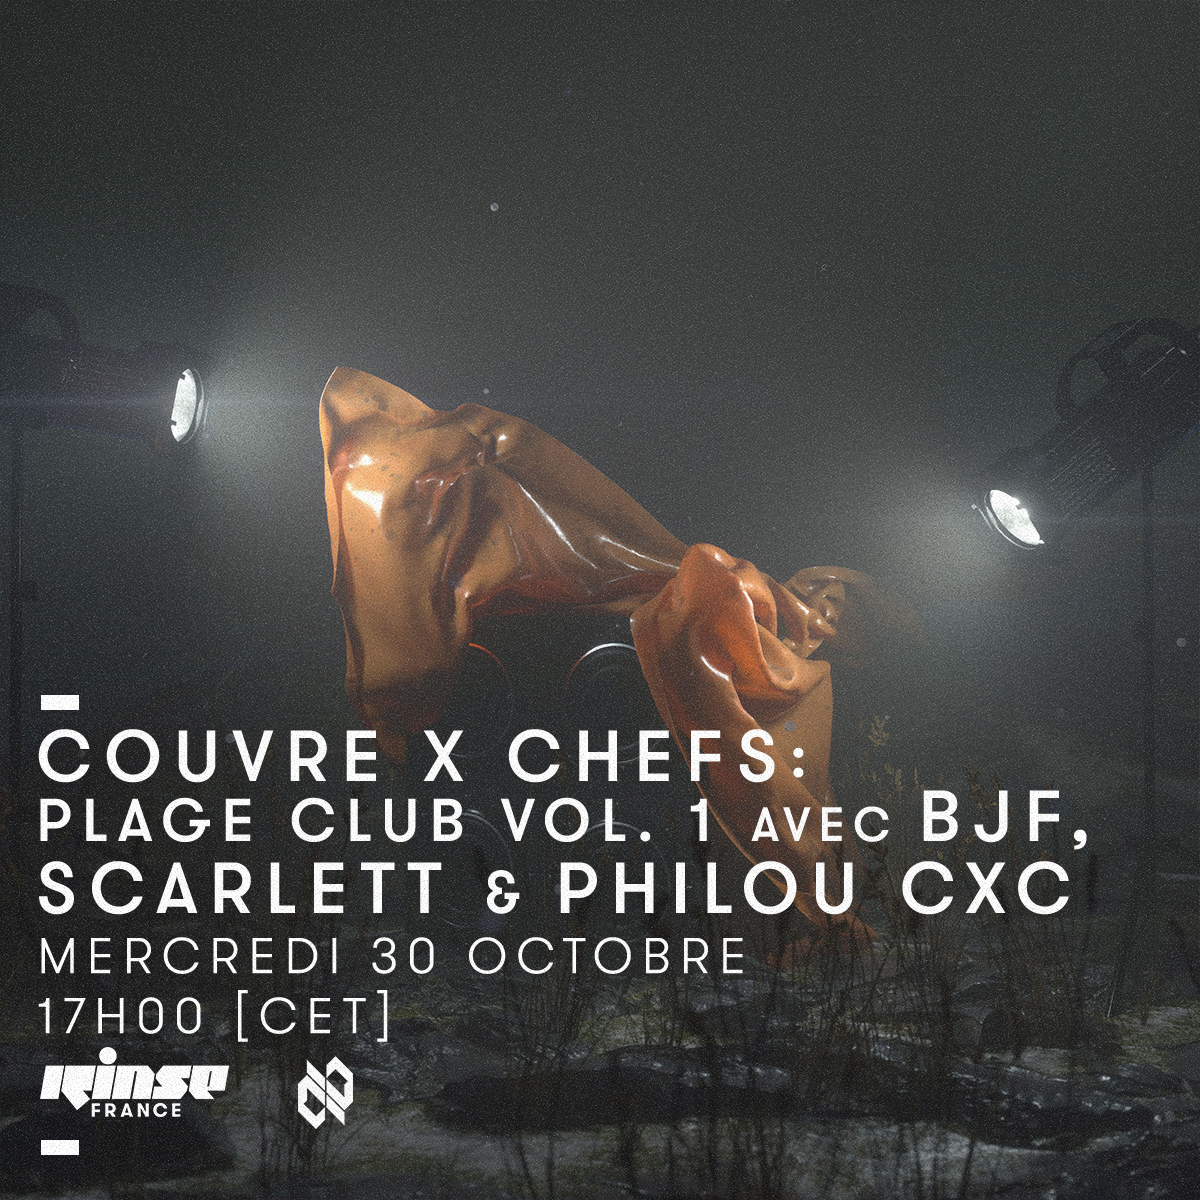 rinse france couvre x chefs plage club vol 1 bjf scarlett philou cxc